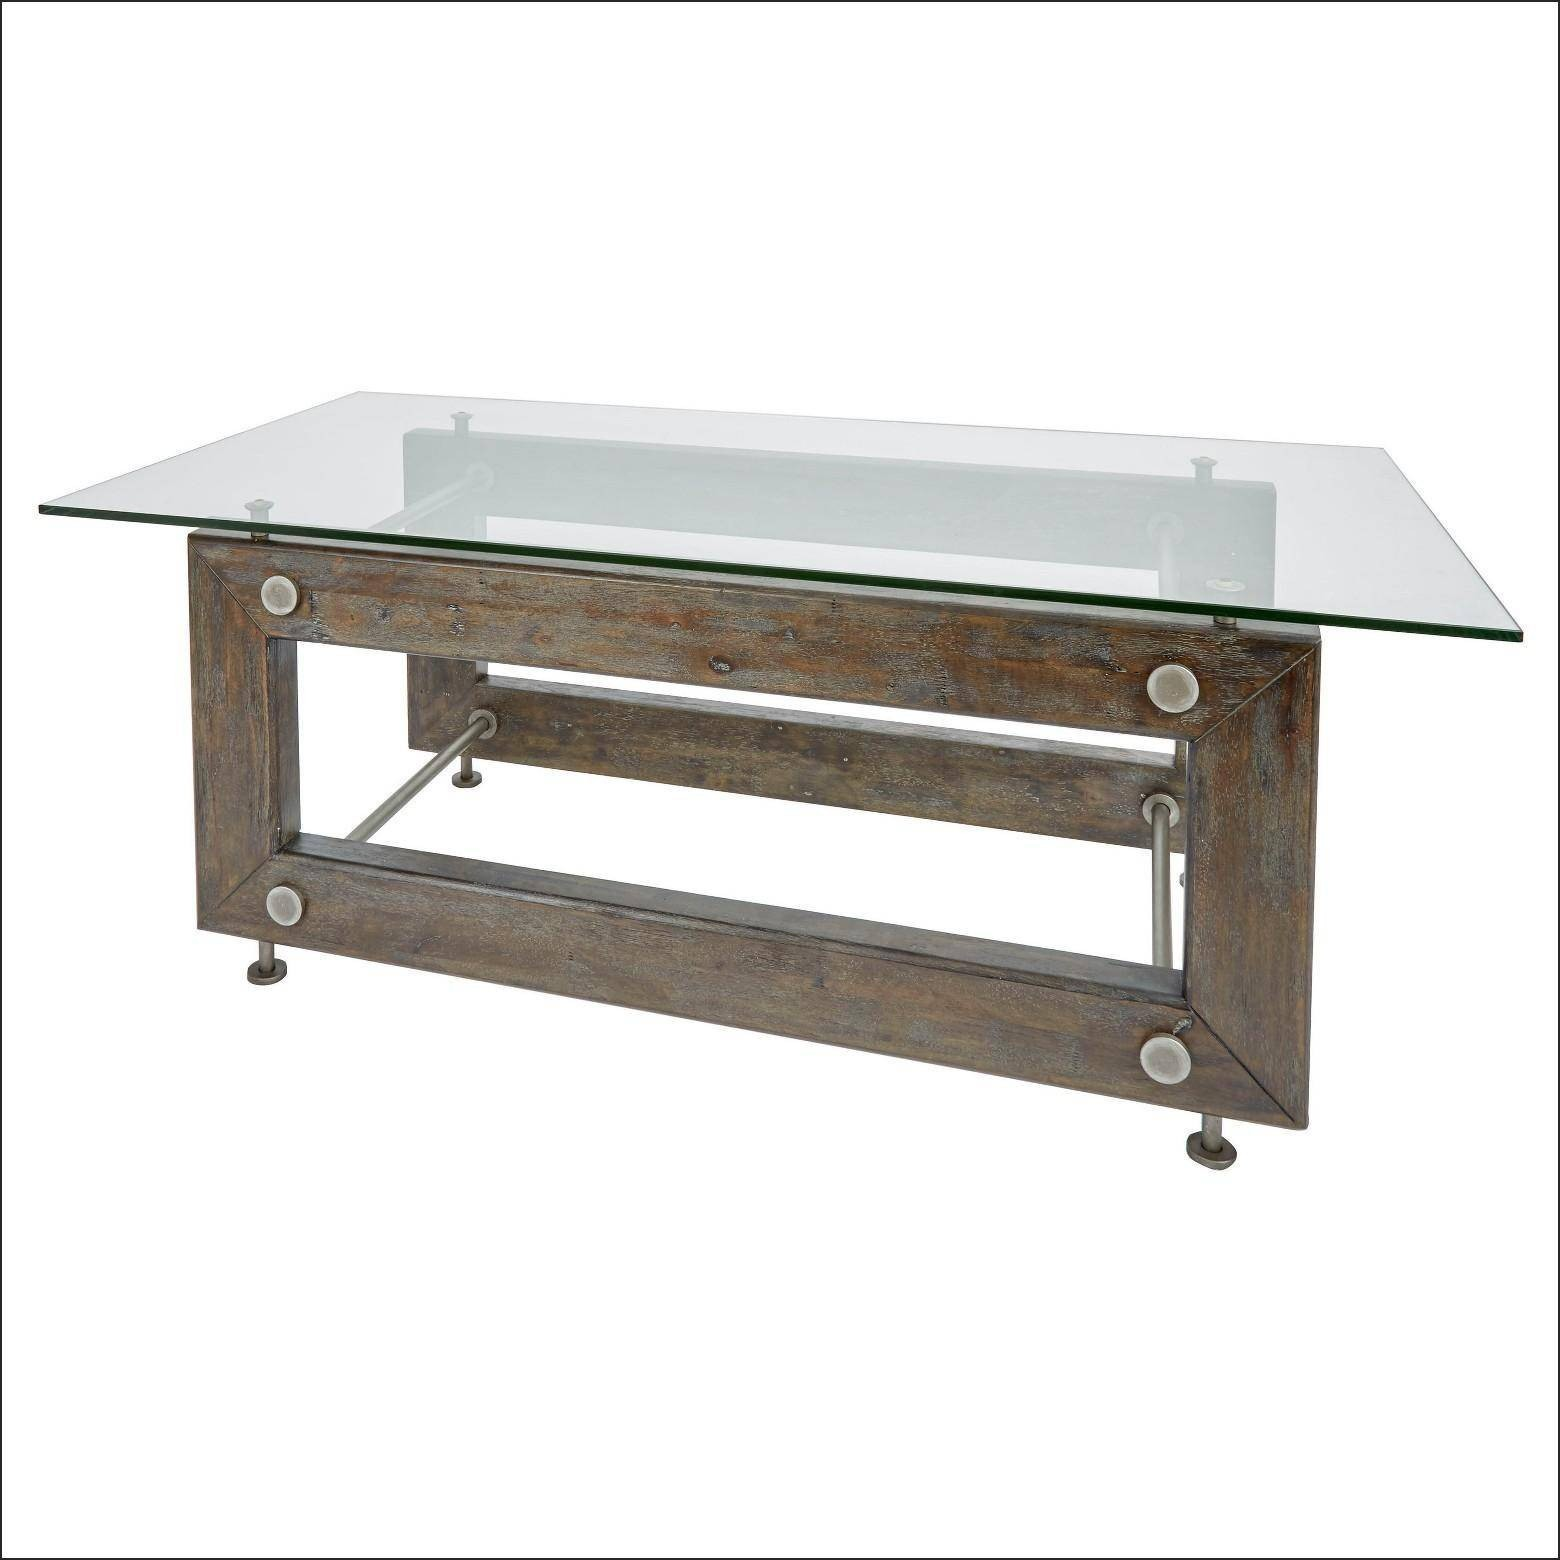 glass end tables for bedroom garage coffee table samples also side accent fresh lamps new cool green awesome small design ideas luxury living room full size pottery barn and iron